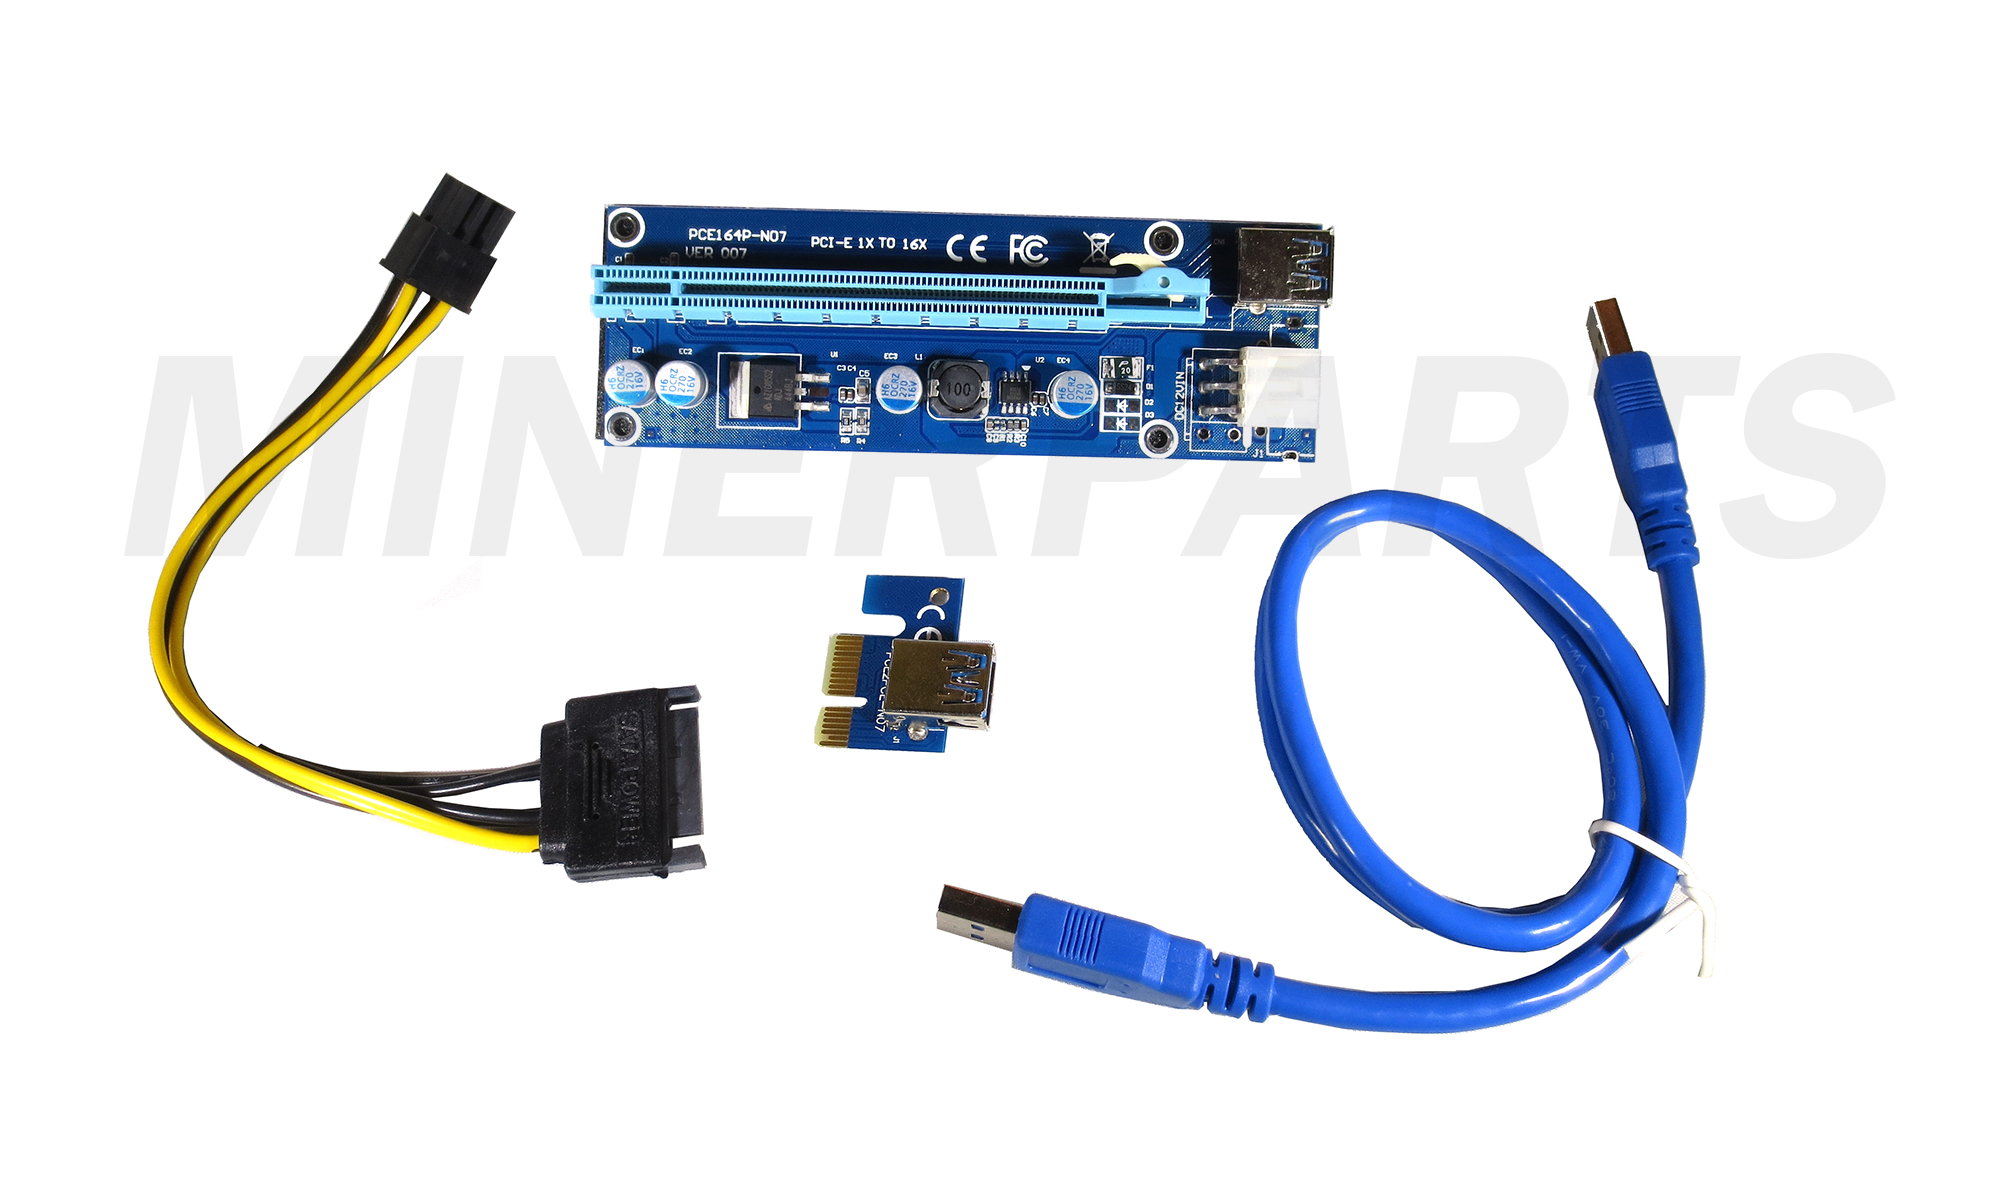 case of 100 pcie risers with usb 3 0 version blue 6c miner parts